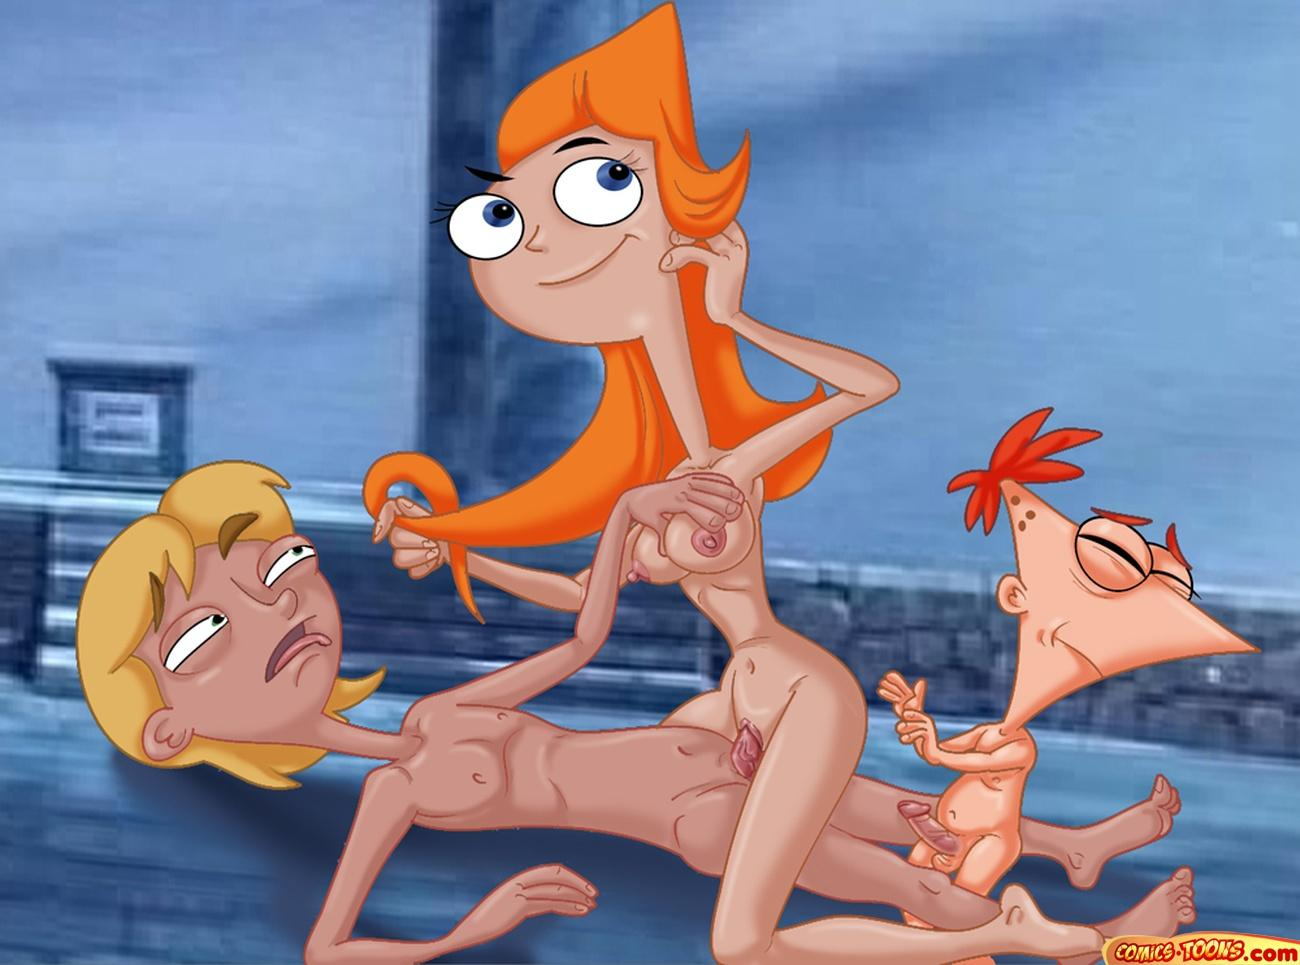 suzy phineas ferb and johnson Spider man web of shadows symbiote characters